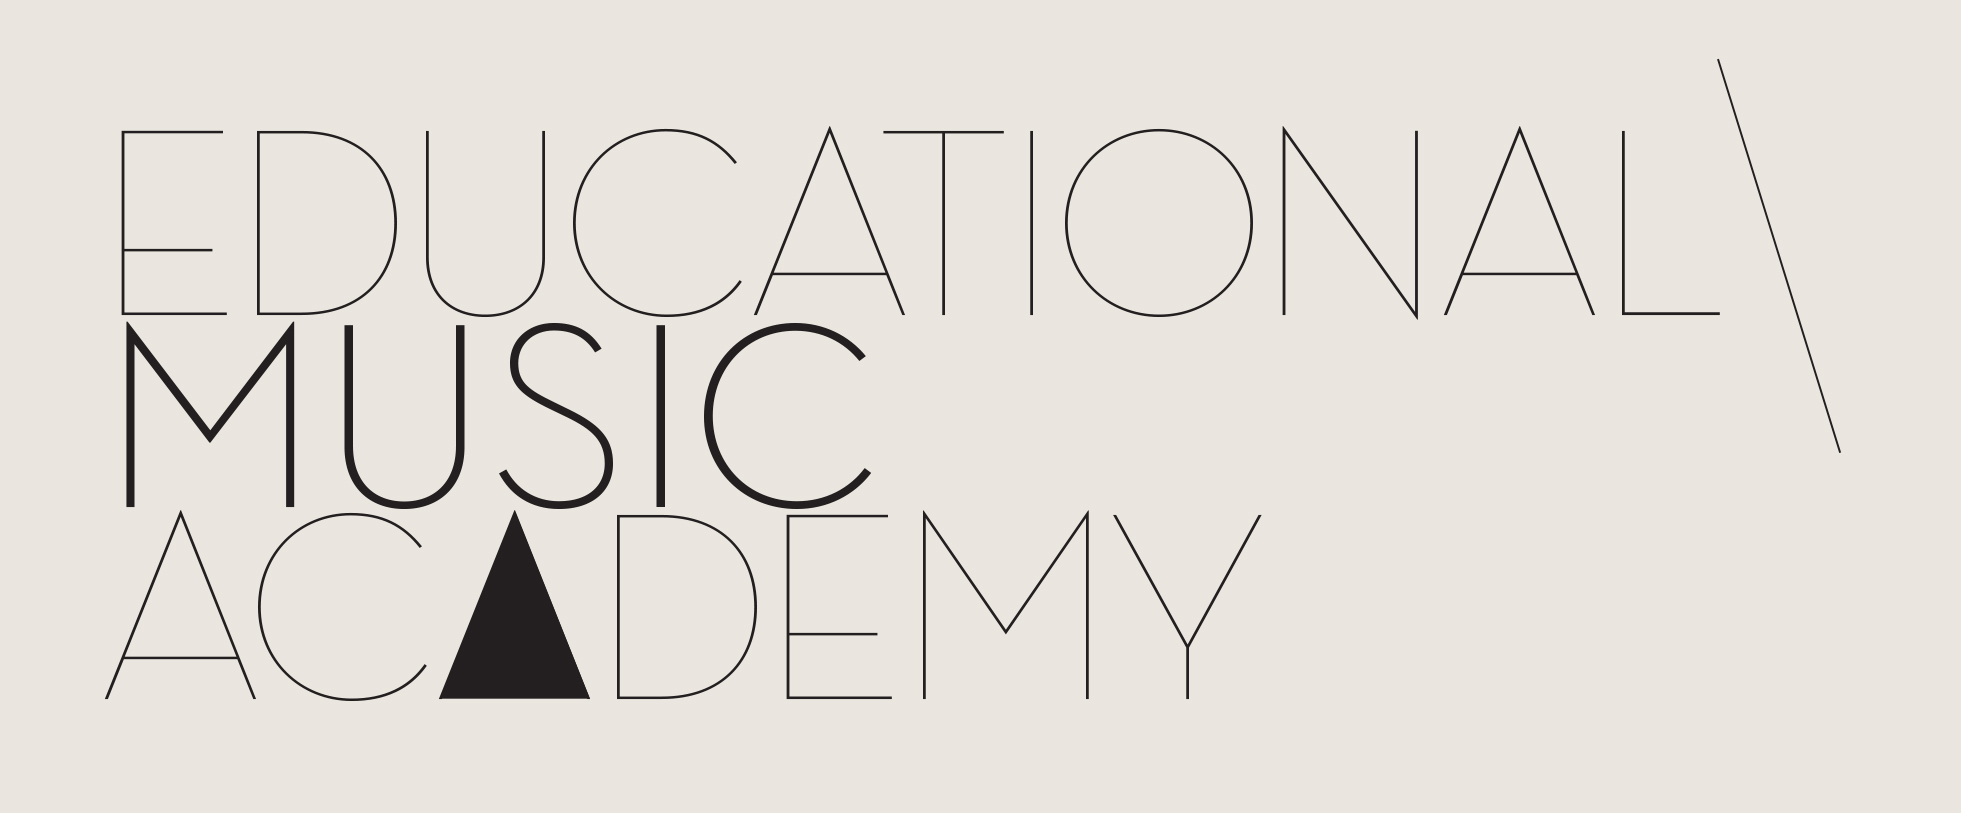 logo educational music academy